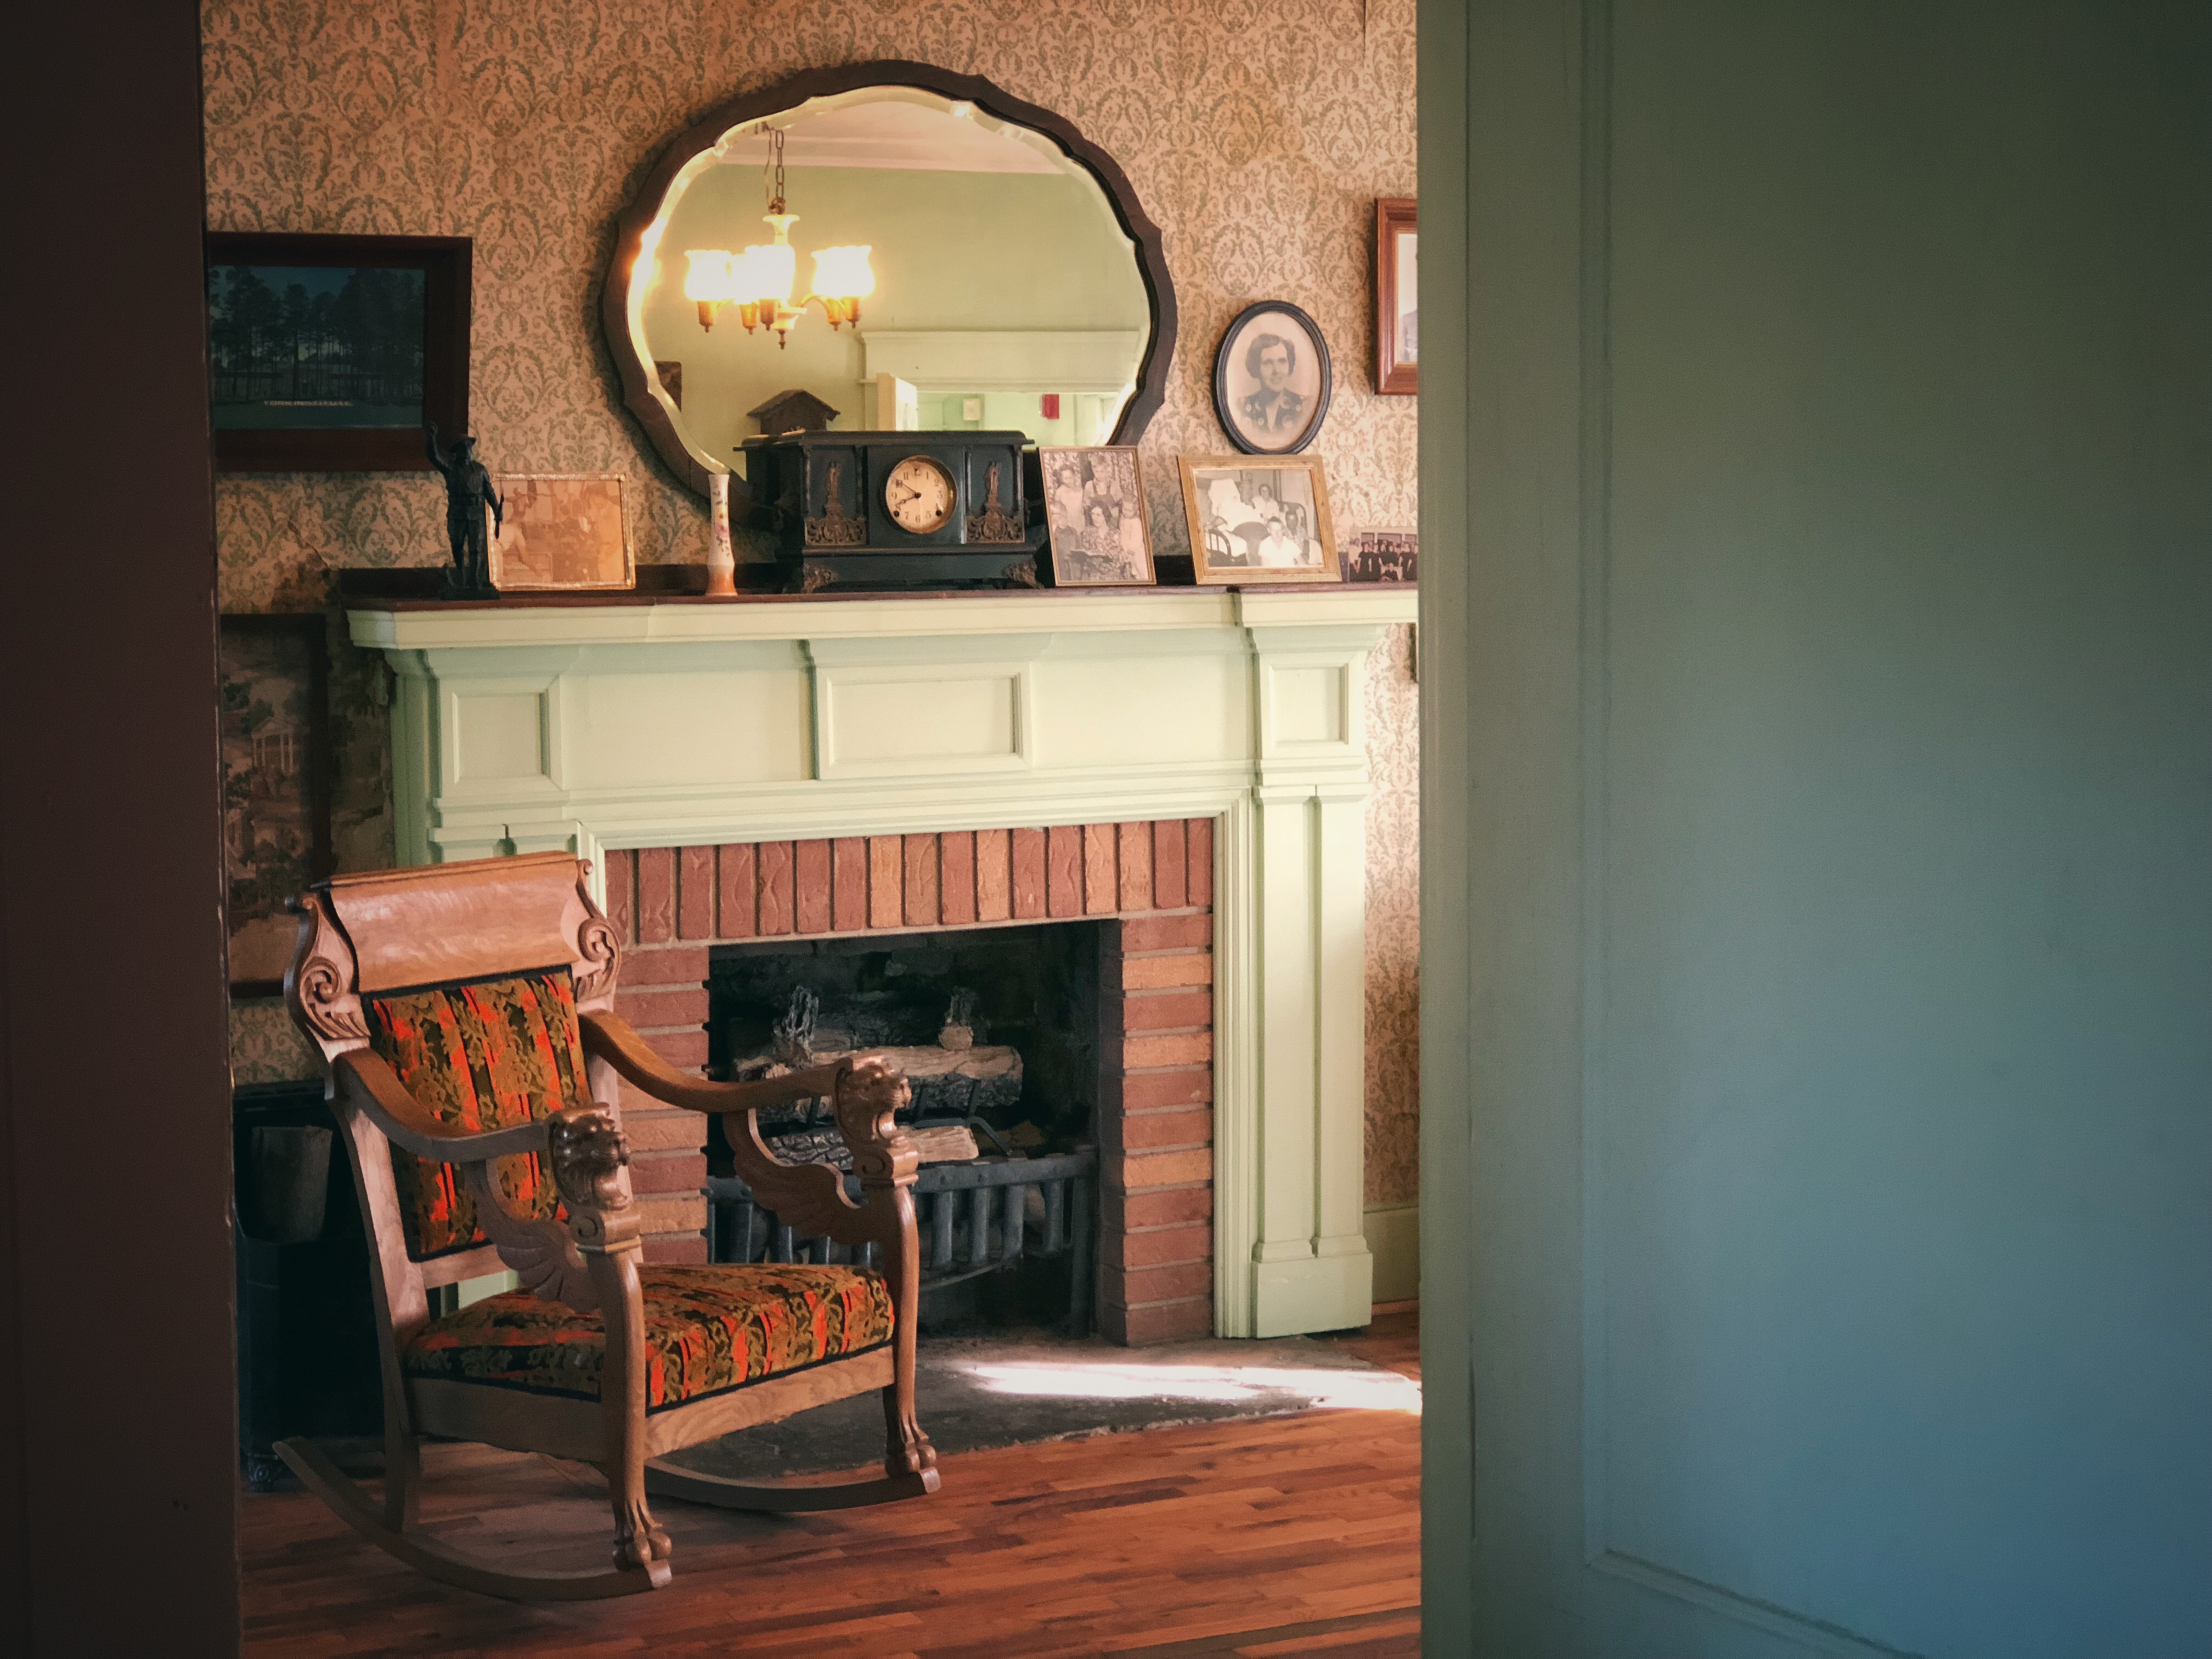 Alvin C. York's home, interior, Pall Mall, Tennessee